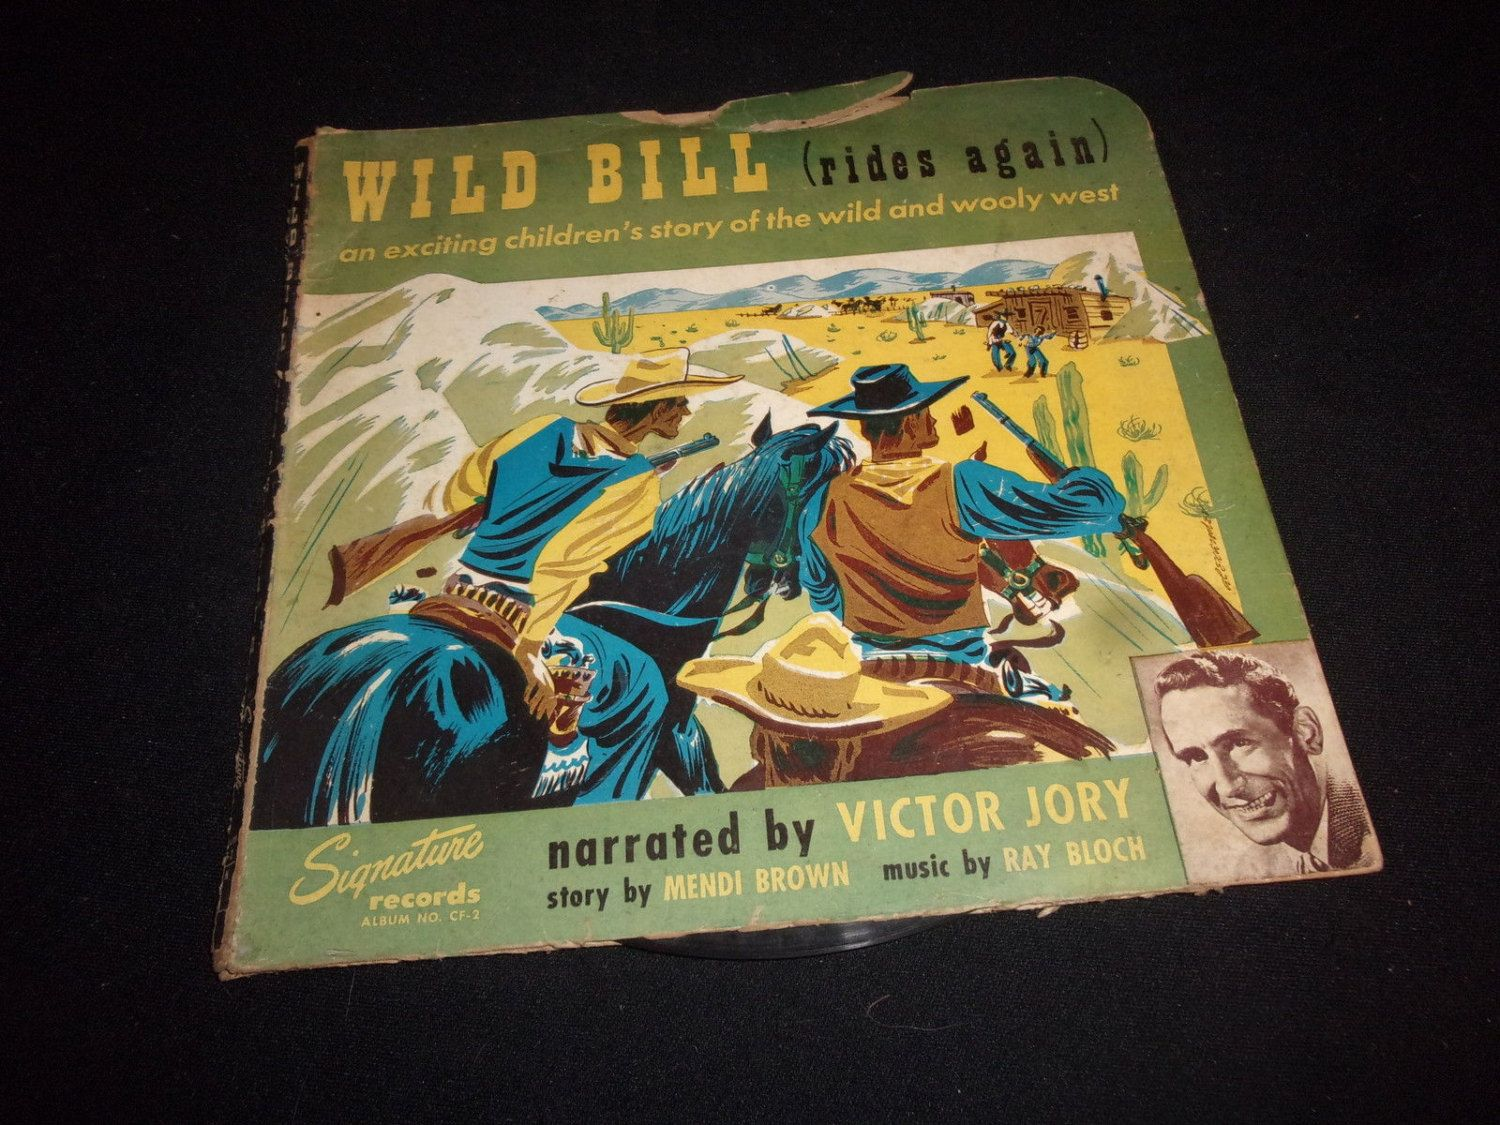 Vintage 1948 Wild Bill Rides Again 78 Record Set - narrated by Victor Jory!